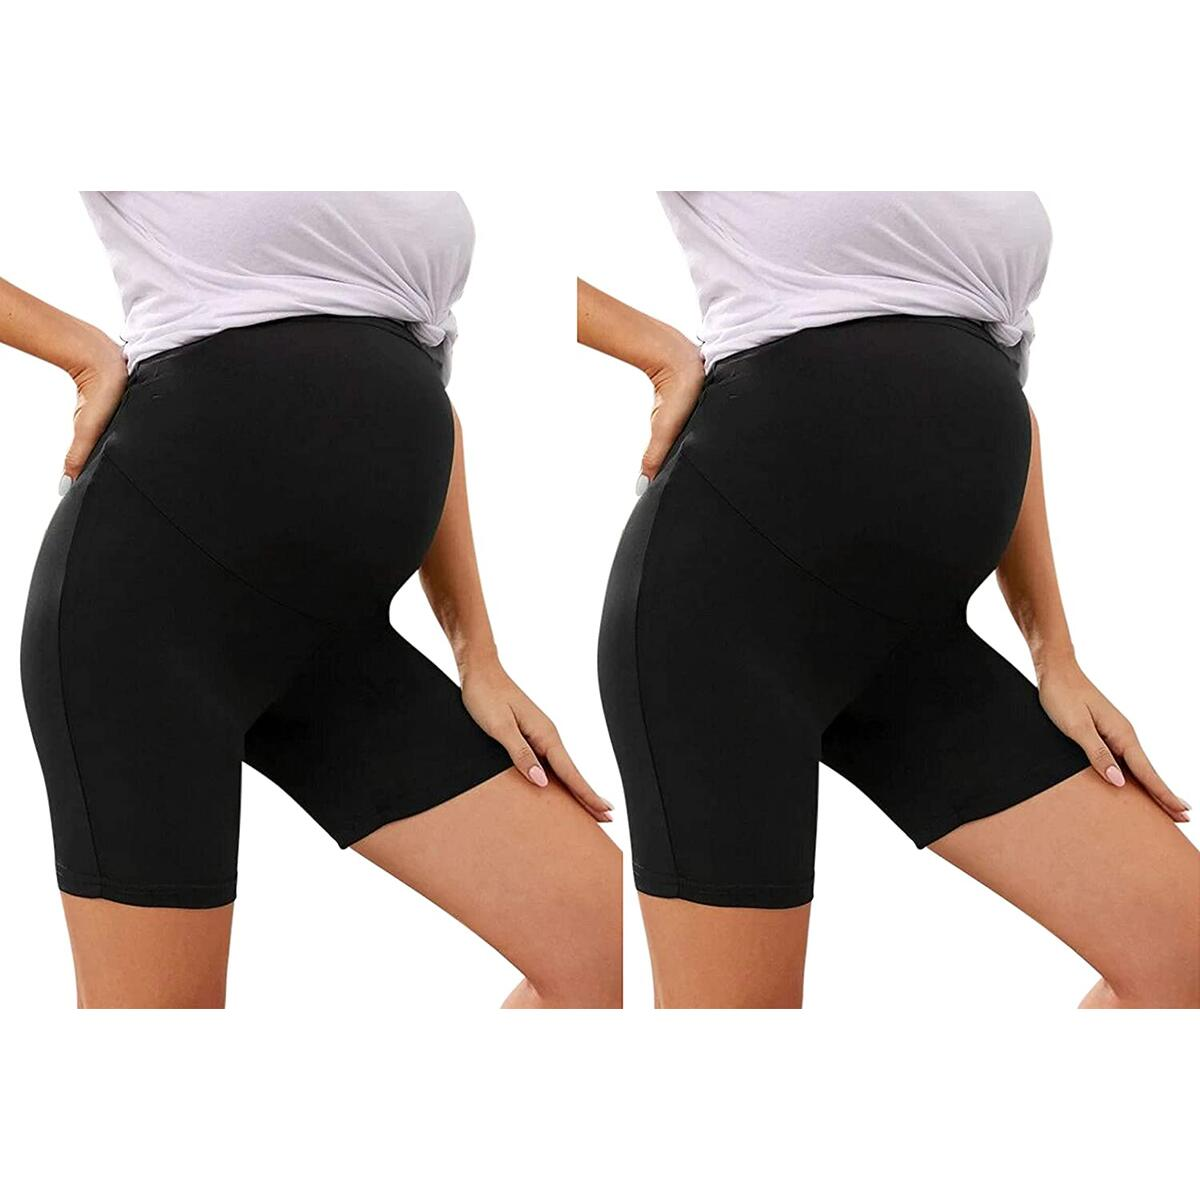 Rebate Only For Color: 2 Pack Black Shorts- Maternity Leggings Over The Belly Activewear Gym Clothes Stretch Nursing Clothes